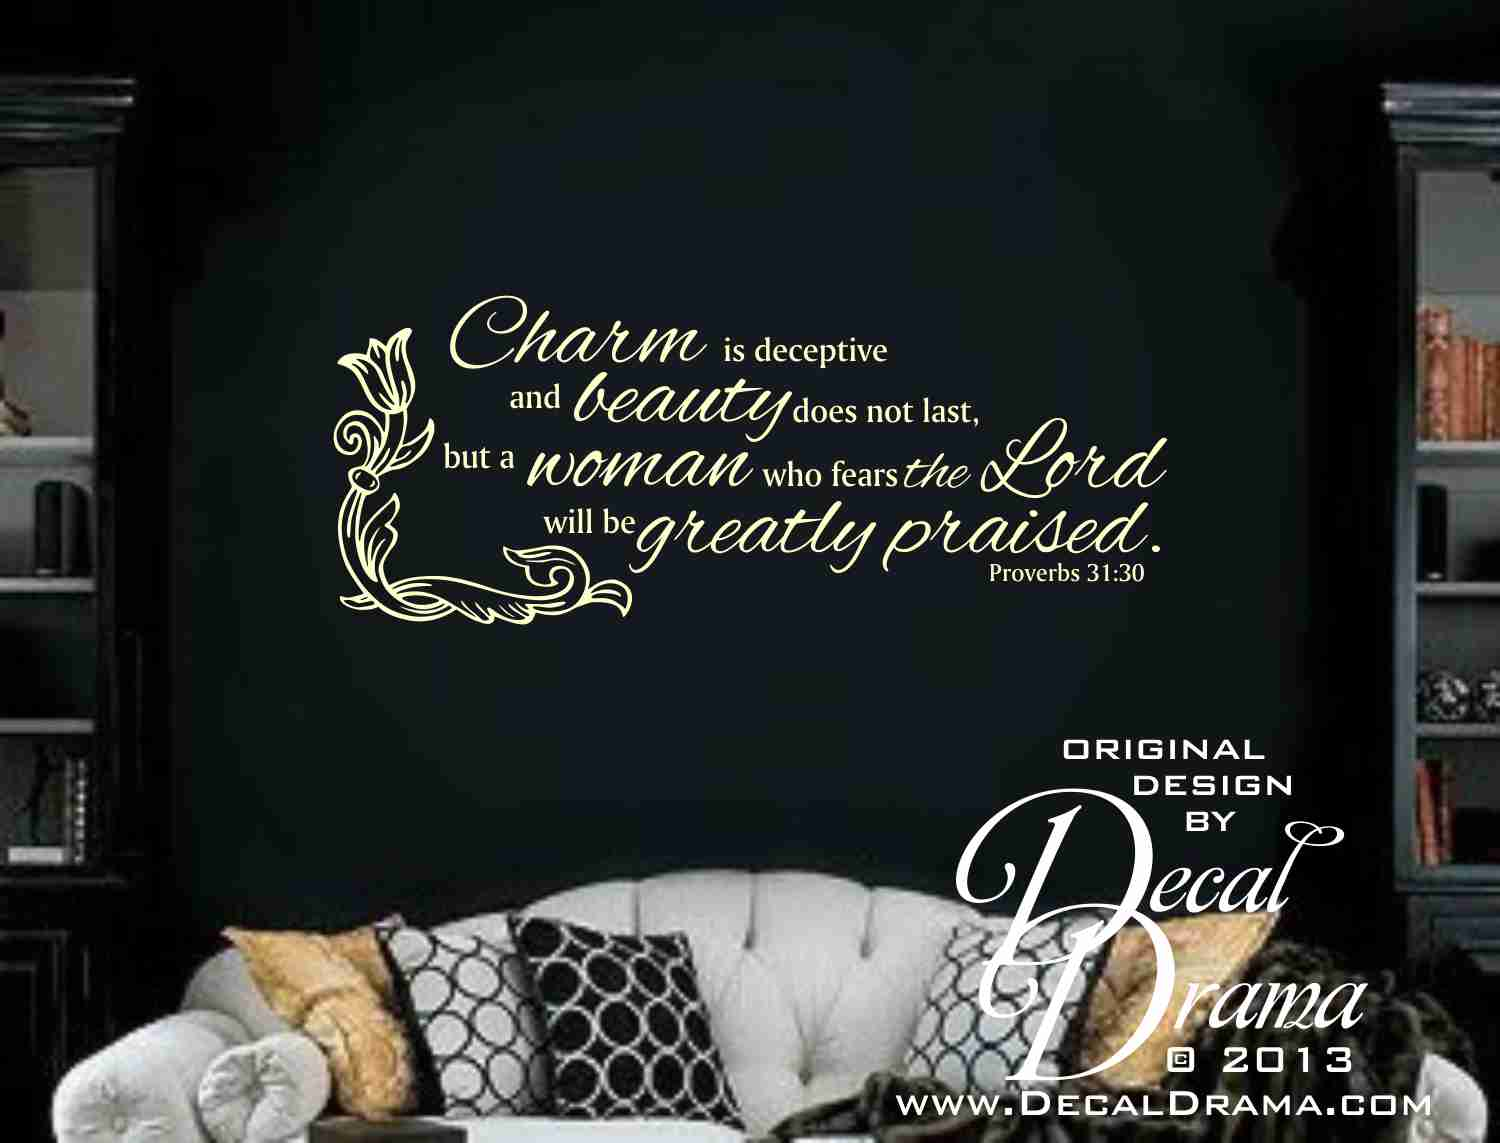 Decal Drama 183 Charm Is Deceptive And Beauty But A Woman